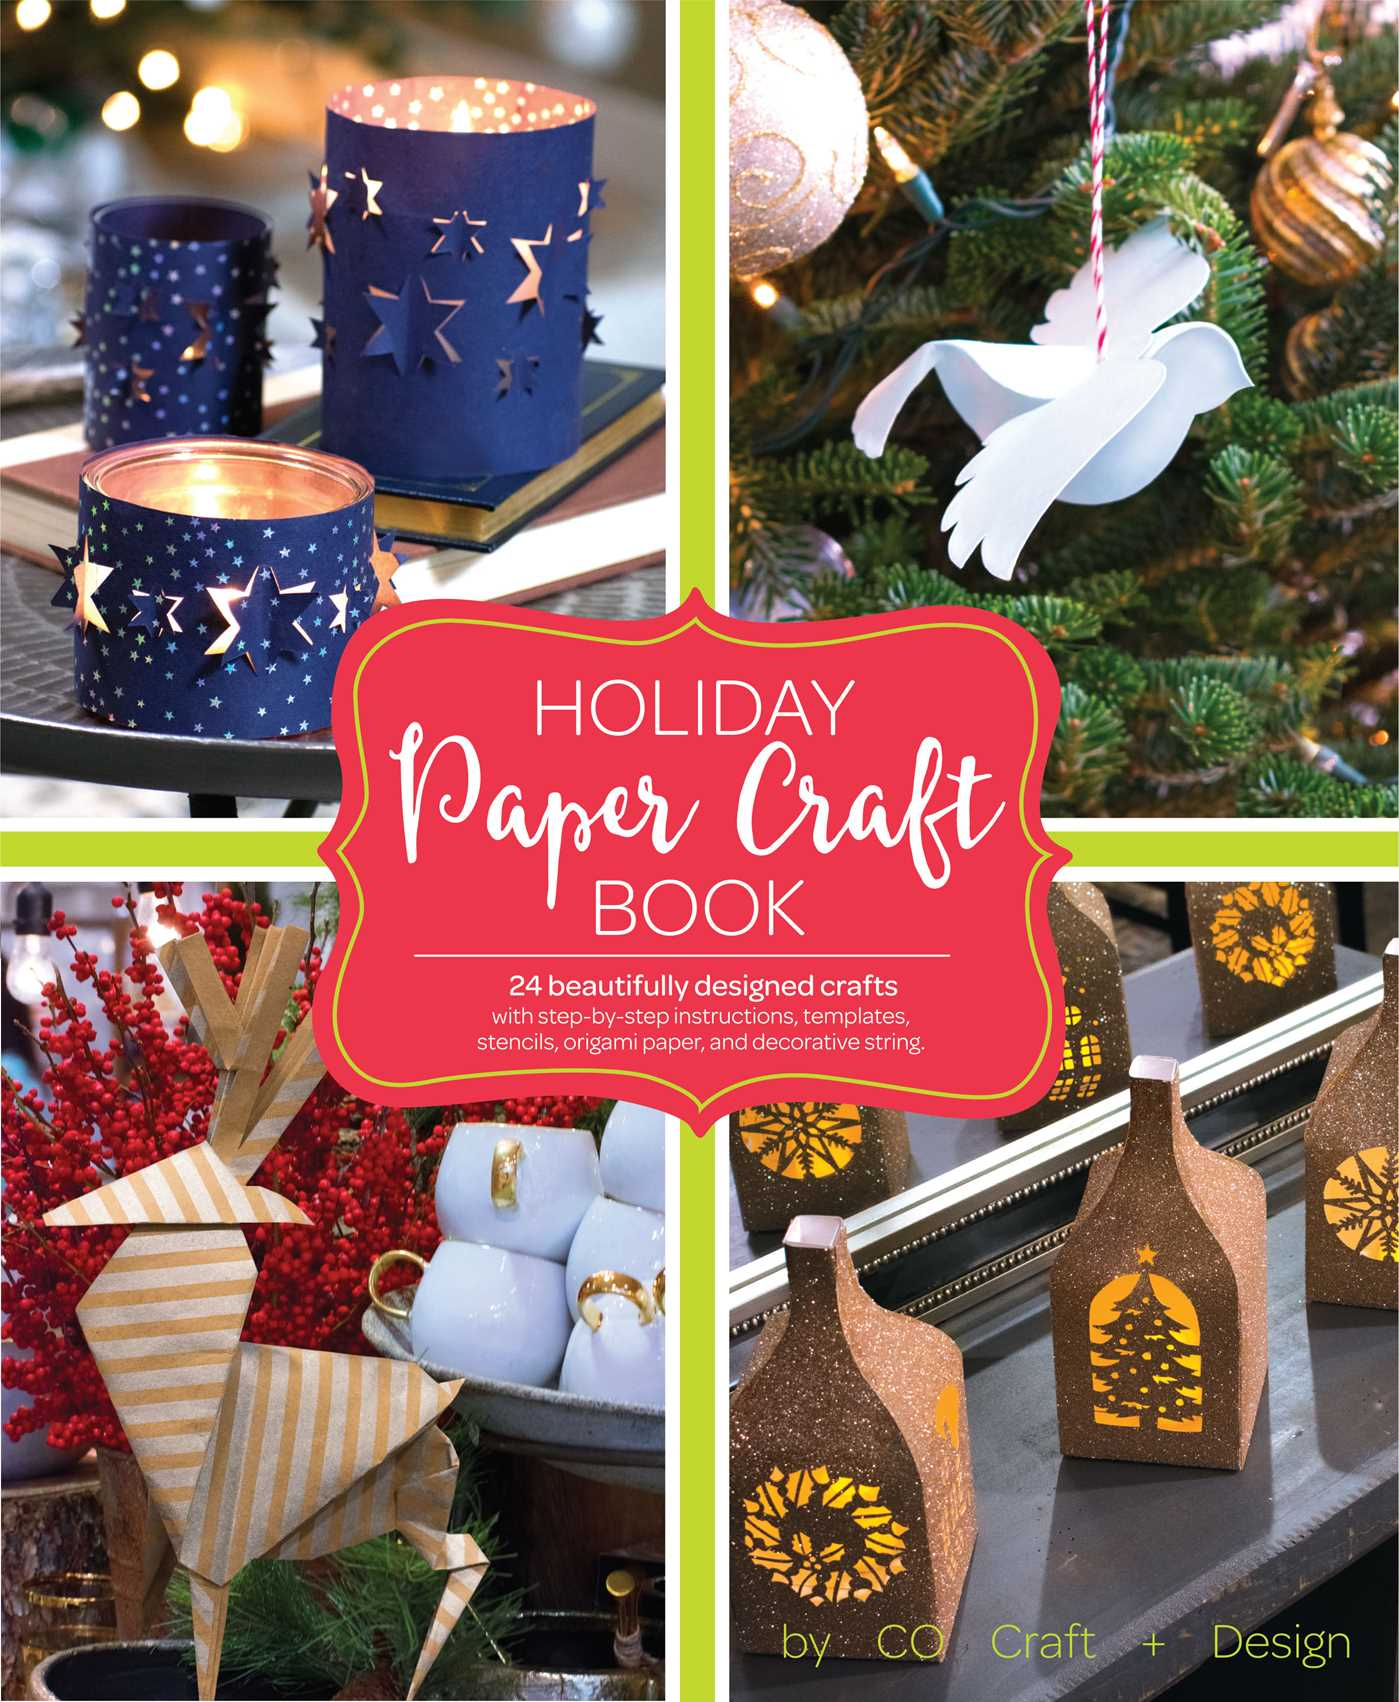 Holiday Paper Crafts Book by Larimer Craft & Design